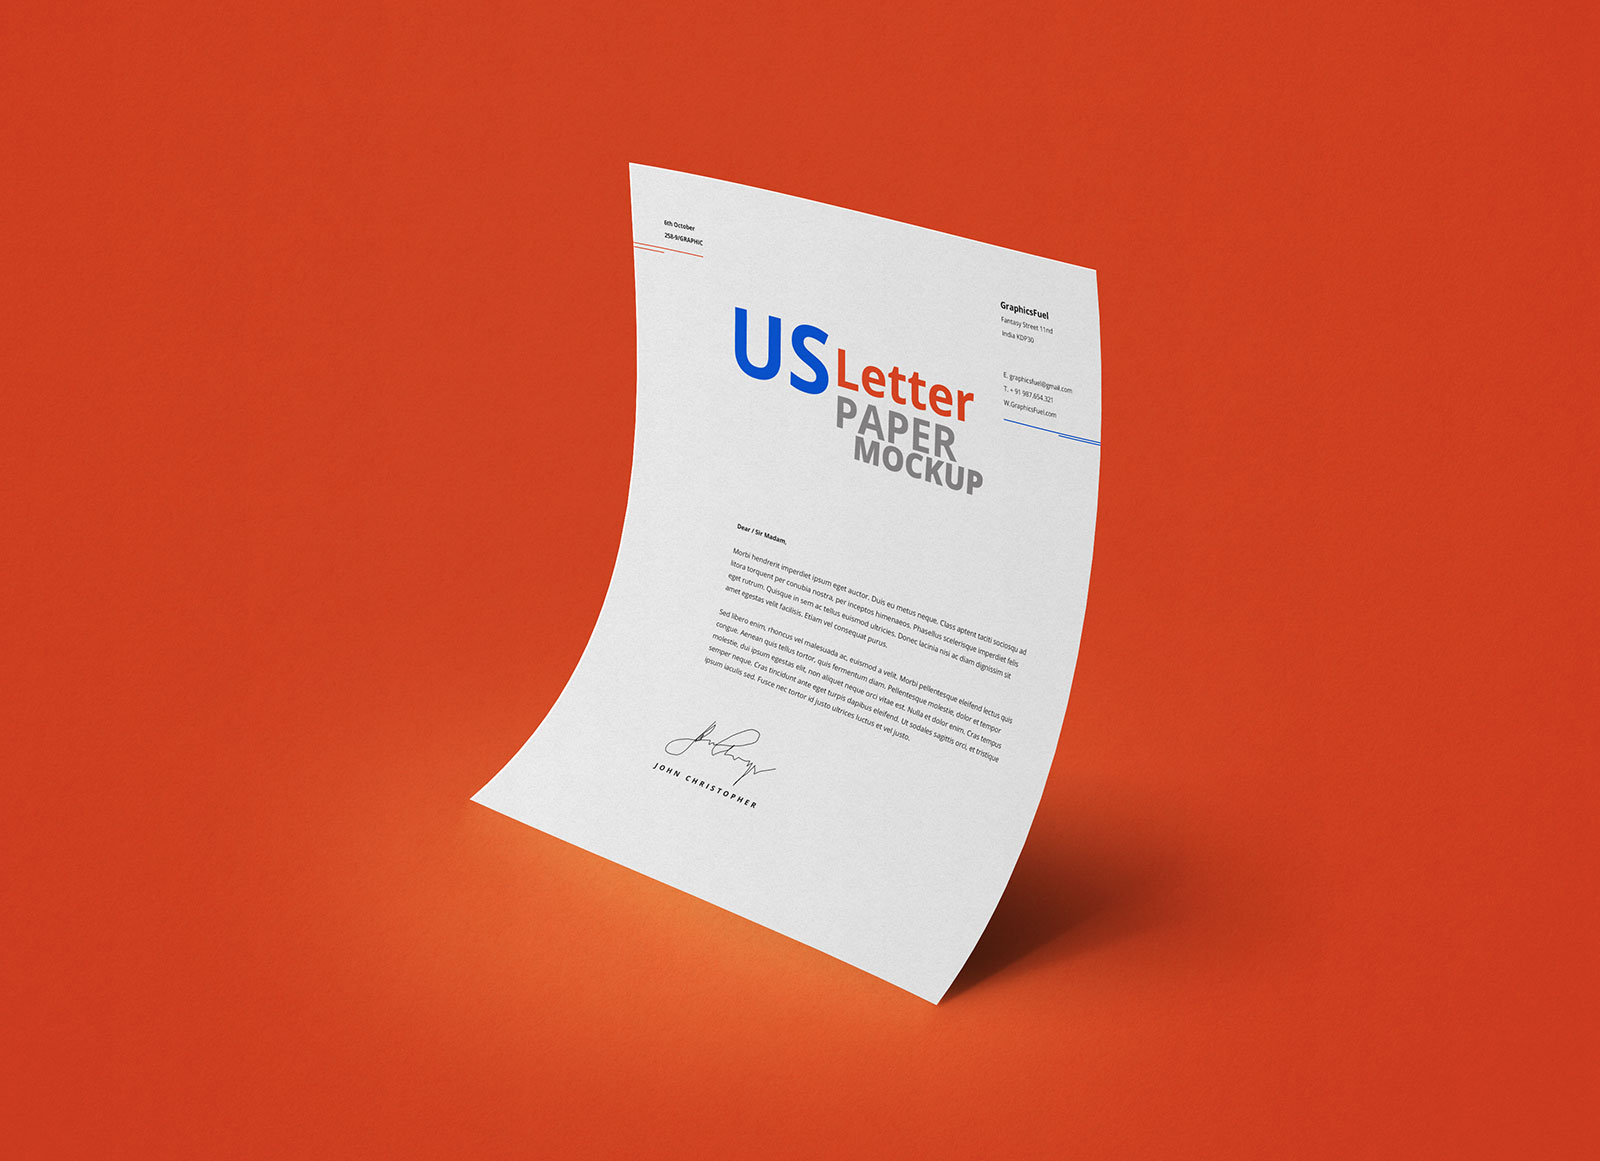 Free-Curved-A4-Paper-Mockup-PSD-File